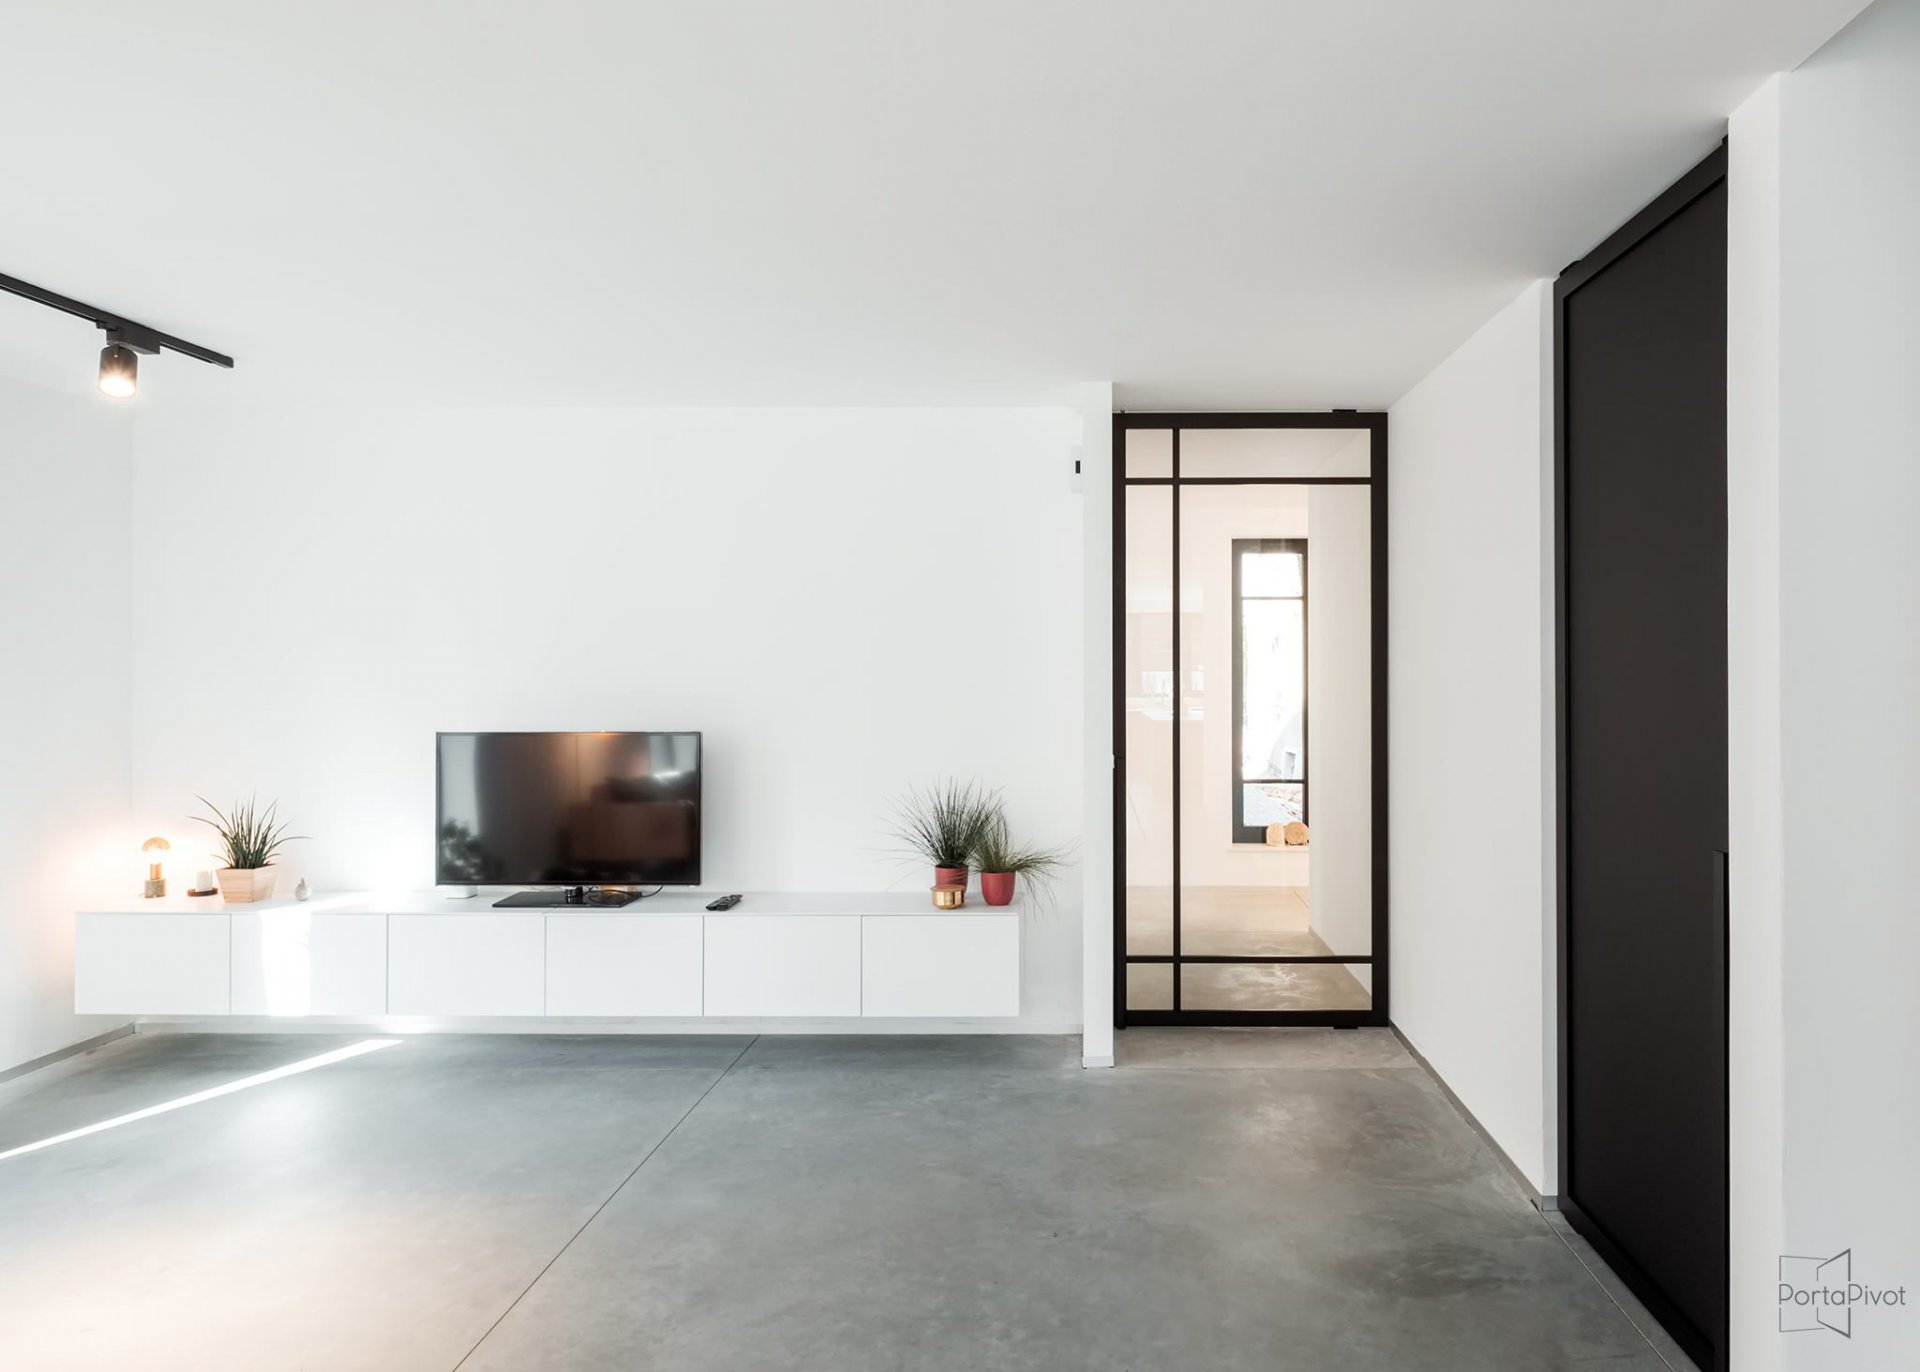 steel look doors, de trend van dit moment!